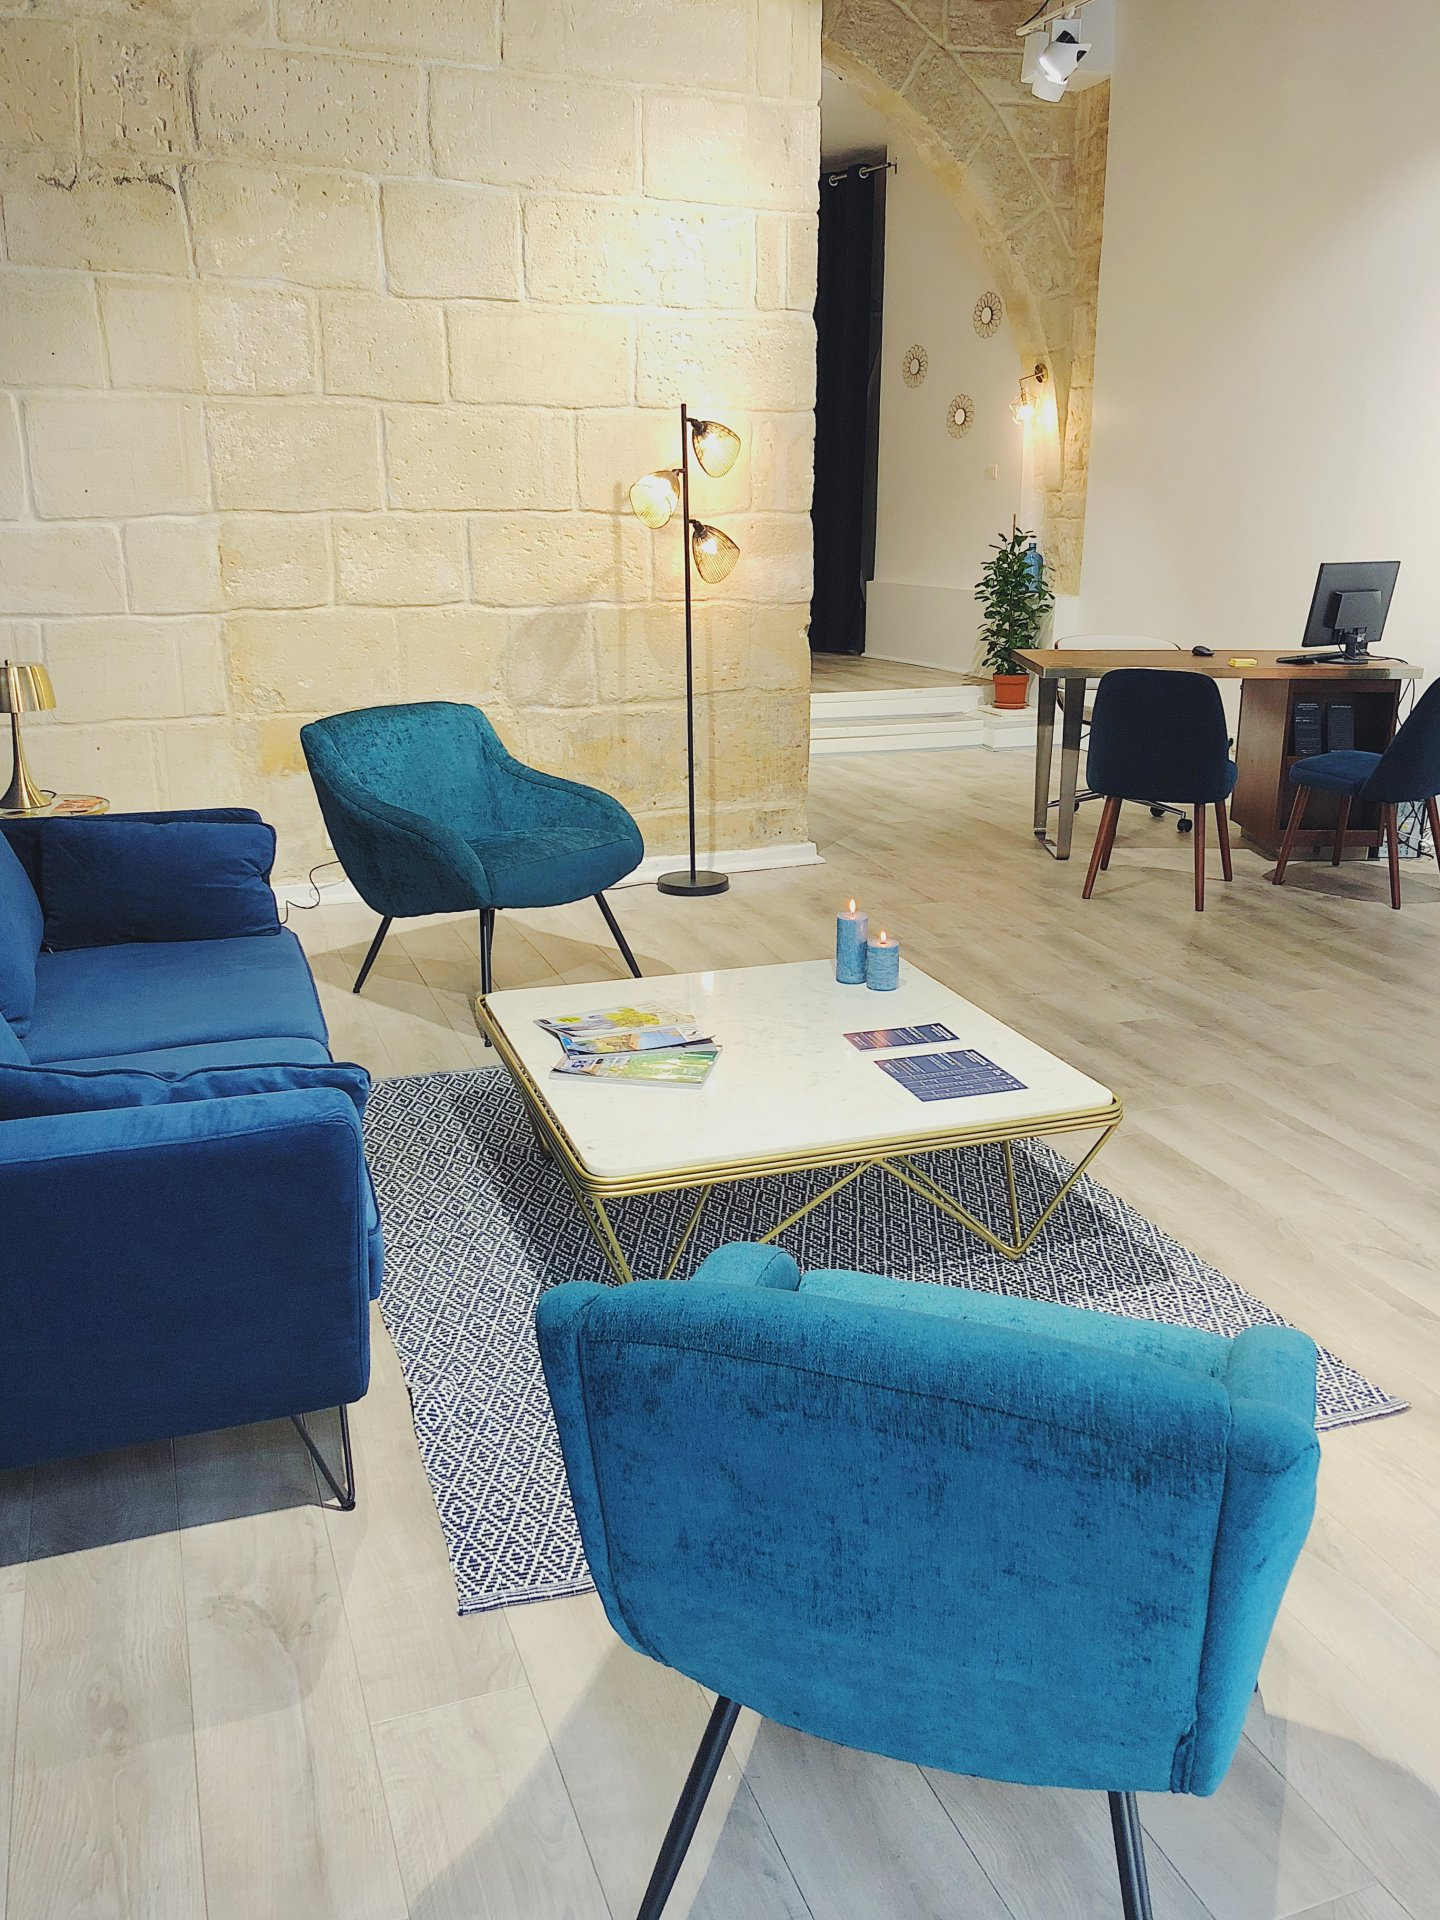 Leonis Immobilier Pays d'Arles